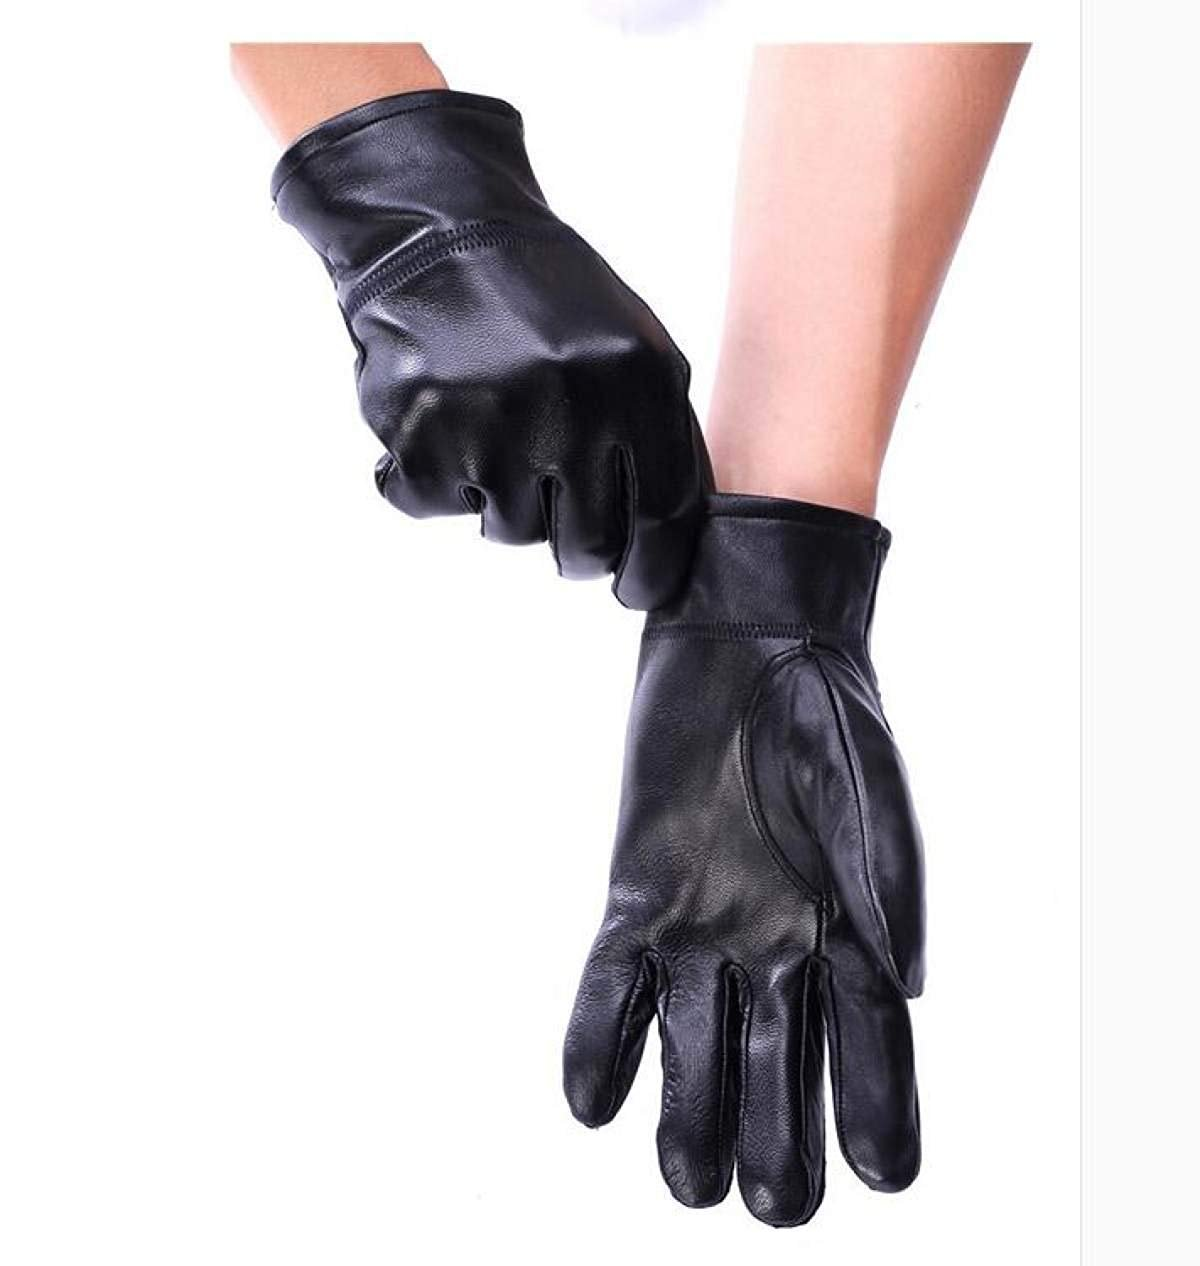 CWJ Gloves Ladies Ride Thicken Warm Autumn and Winter Men's Style,WomenBlack,Large by CWJ (Image #2)